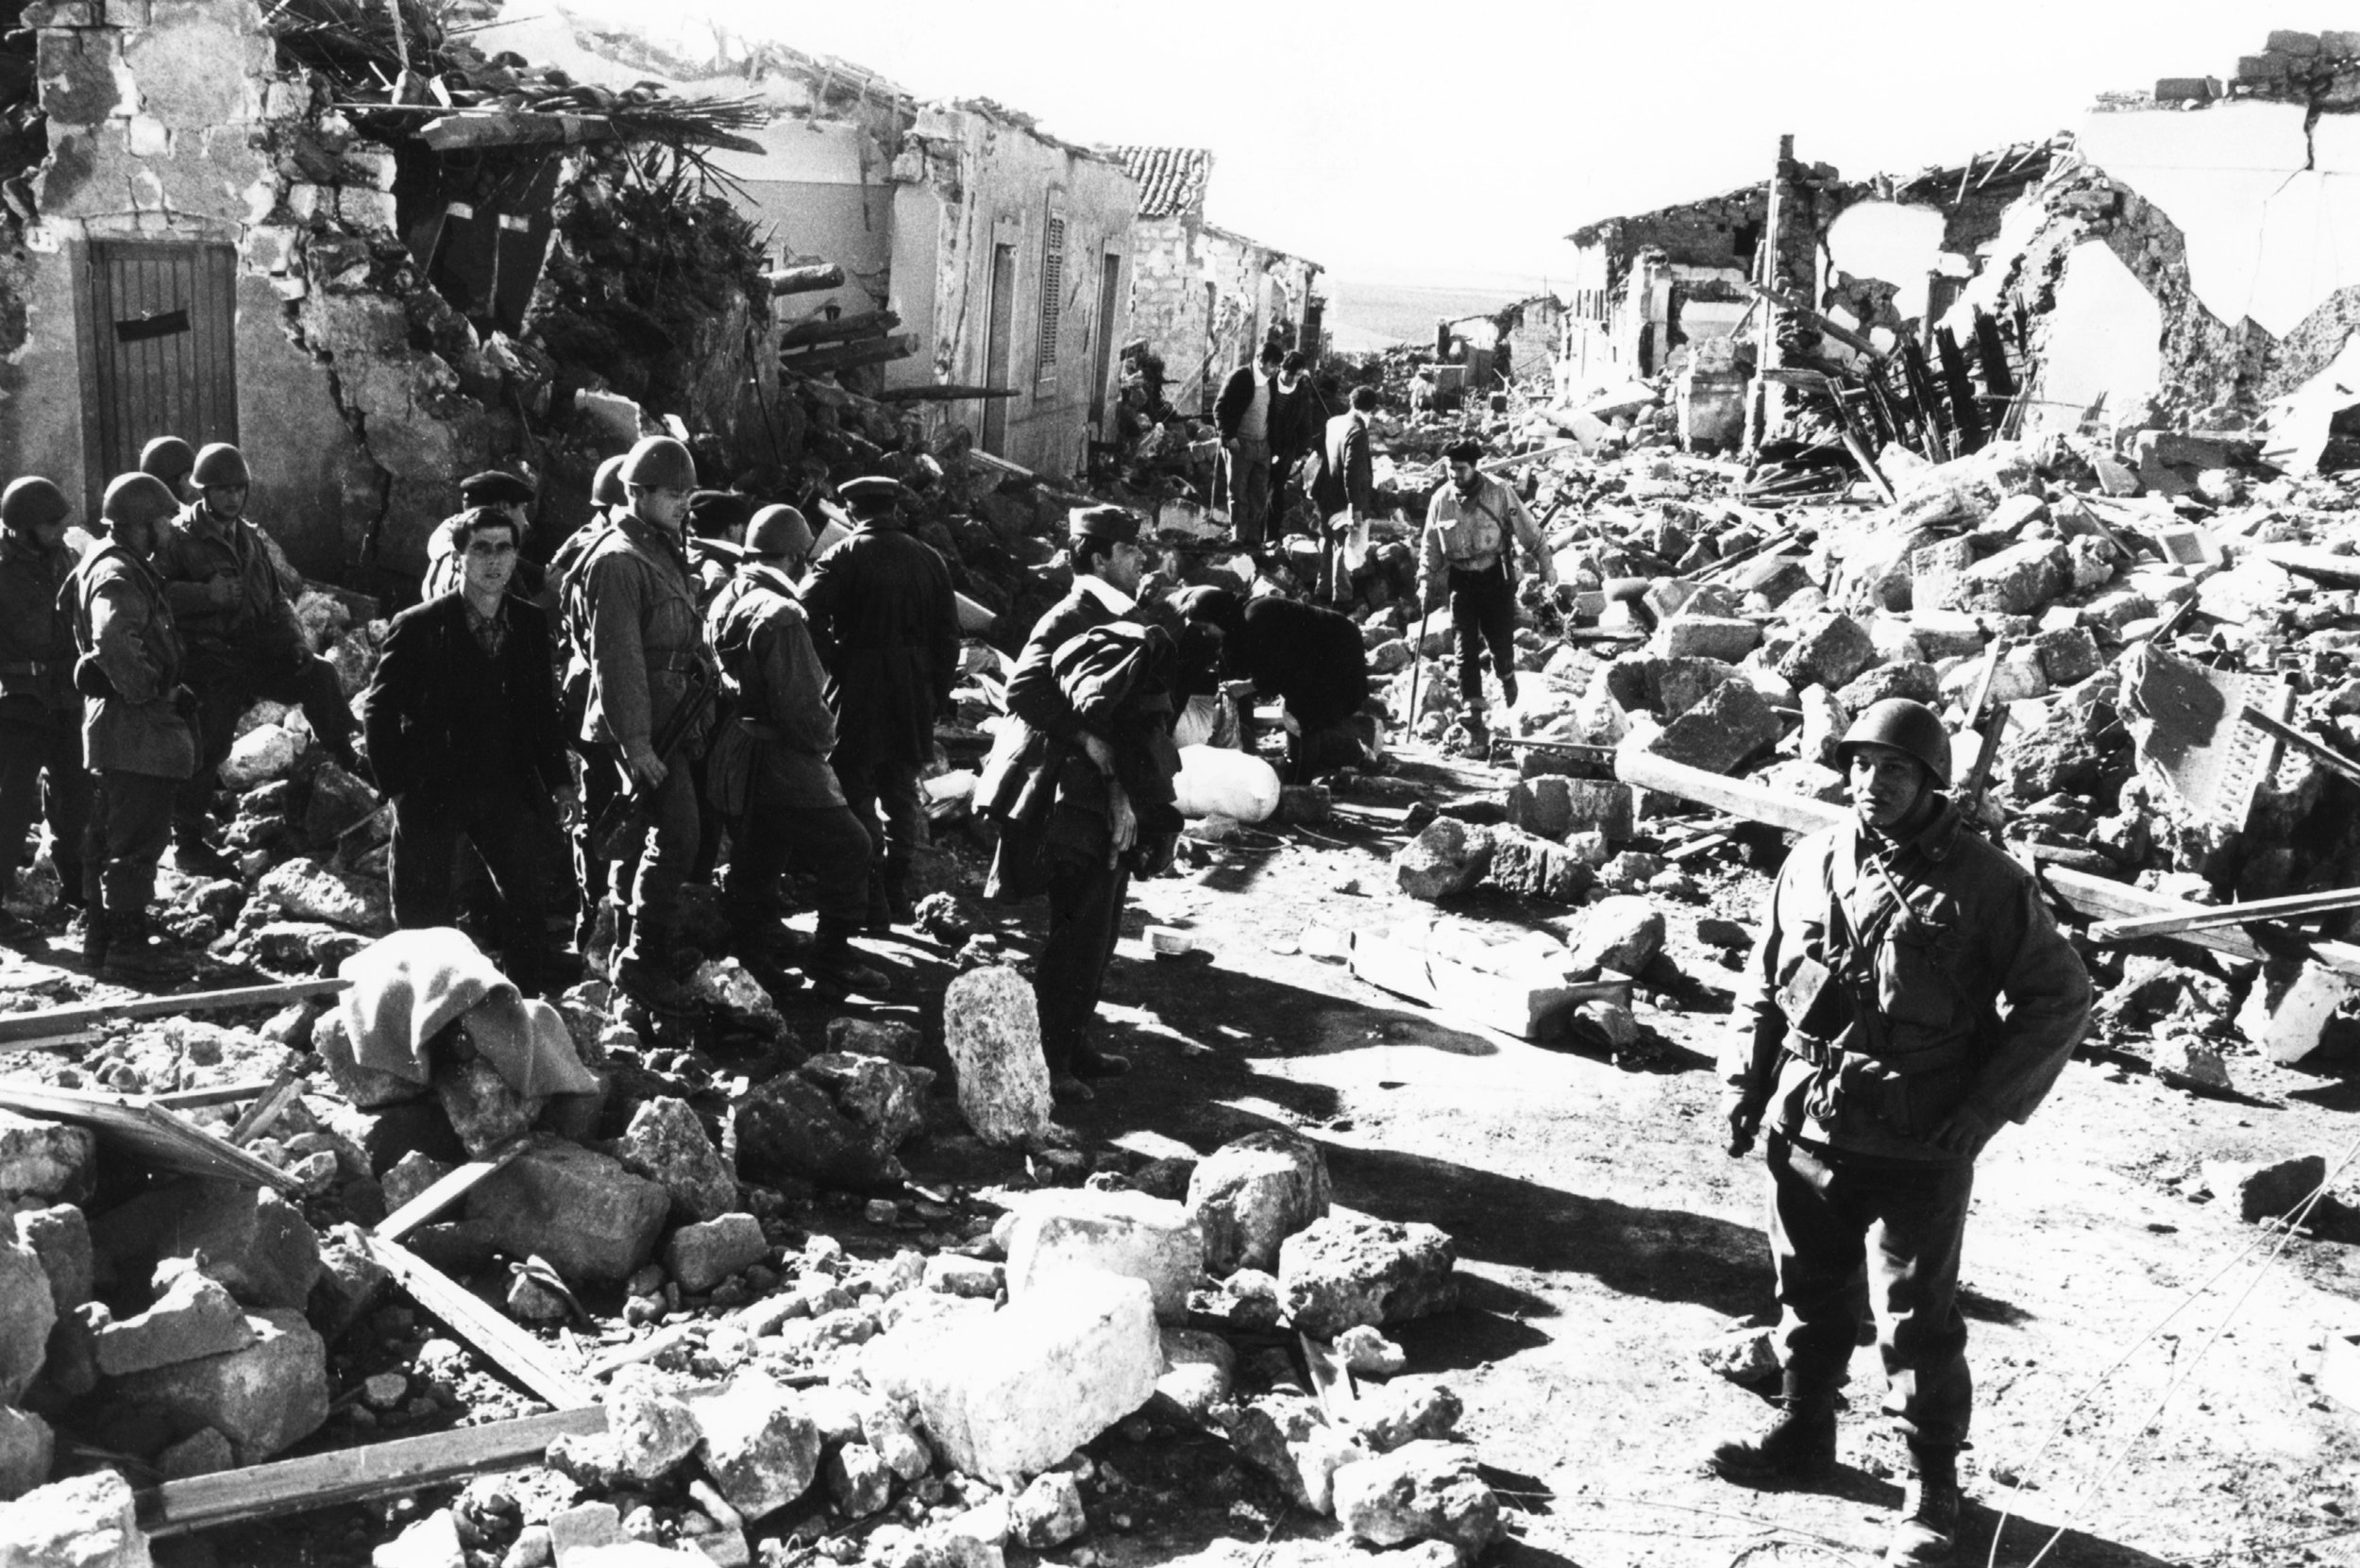 20/01/1968 The earthquake of the Belice. The violent earthquake of magnitude 6.1, on the night between 14 and 15 January 1968 struck a wide area of western Sicily, the Belice Valley, between Trapani, Agrigento and Palermo Army . The rubble of the destroyed houses